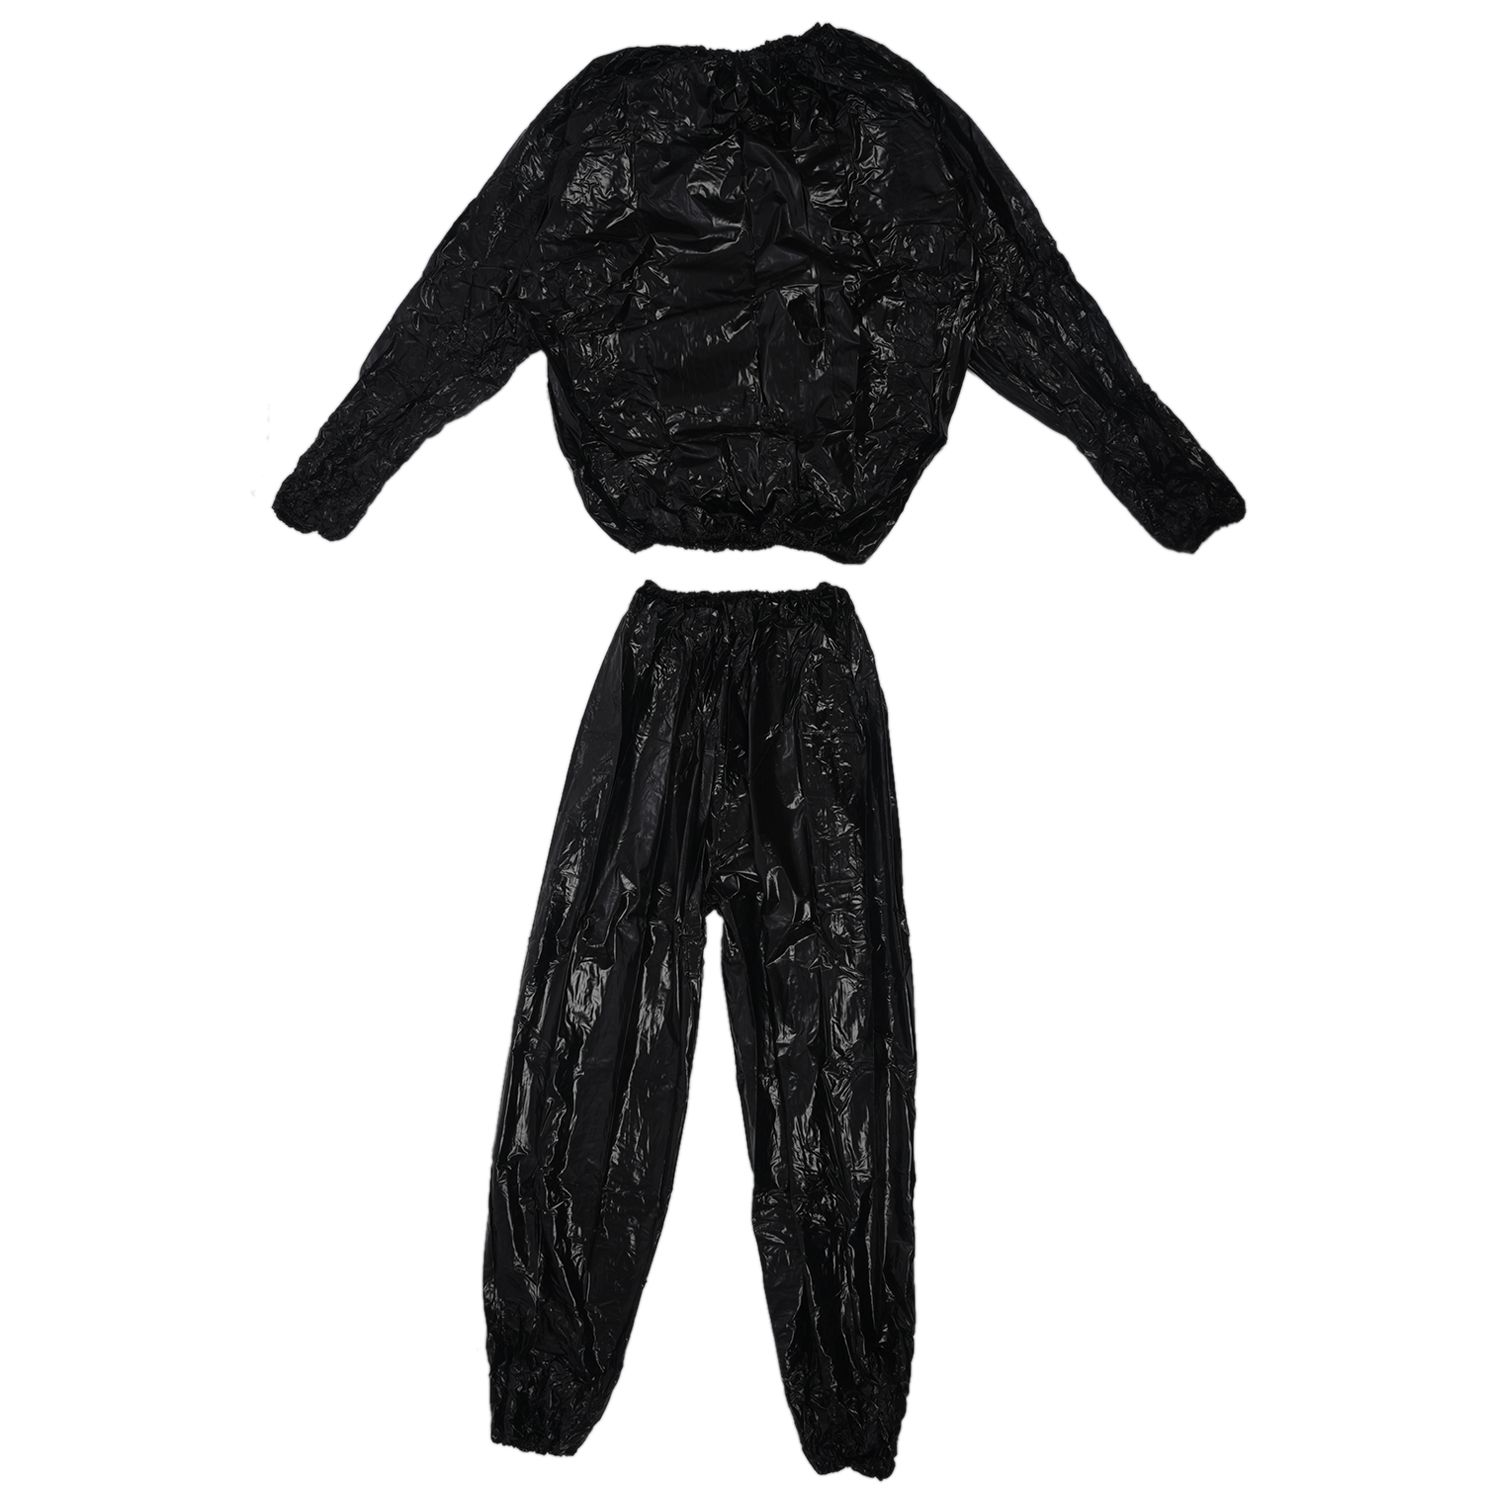 1X Heavy Duty Fitness Weight Loss Sweat Sauna Suit Exercise Gym Anti-Rip V7L W2E